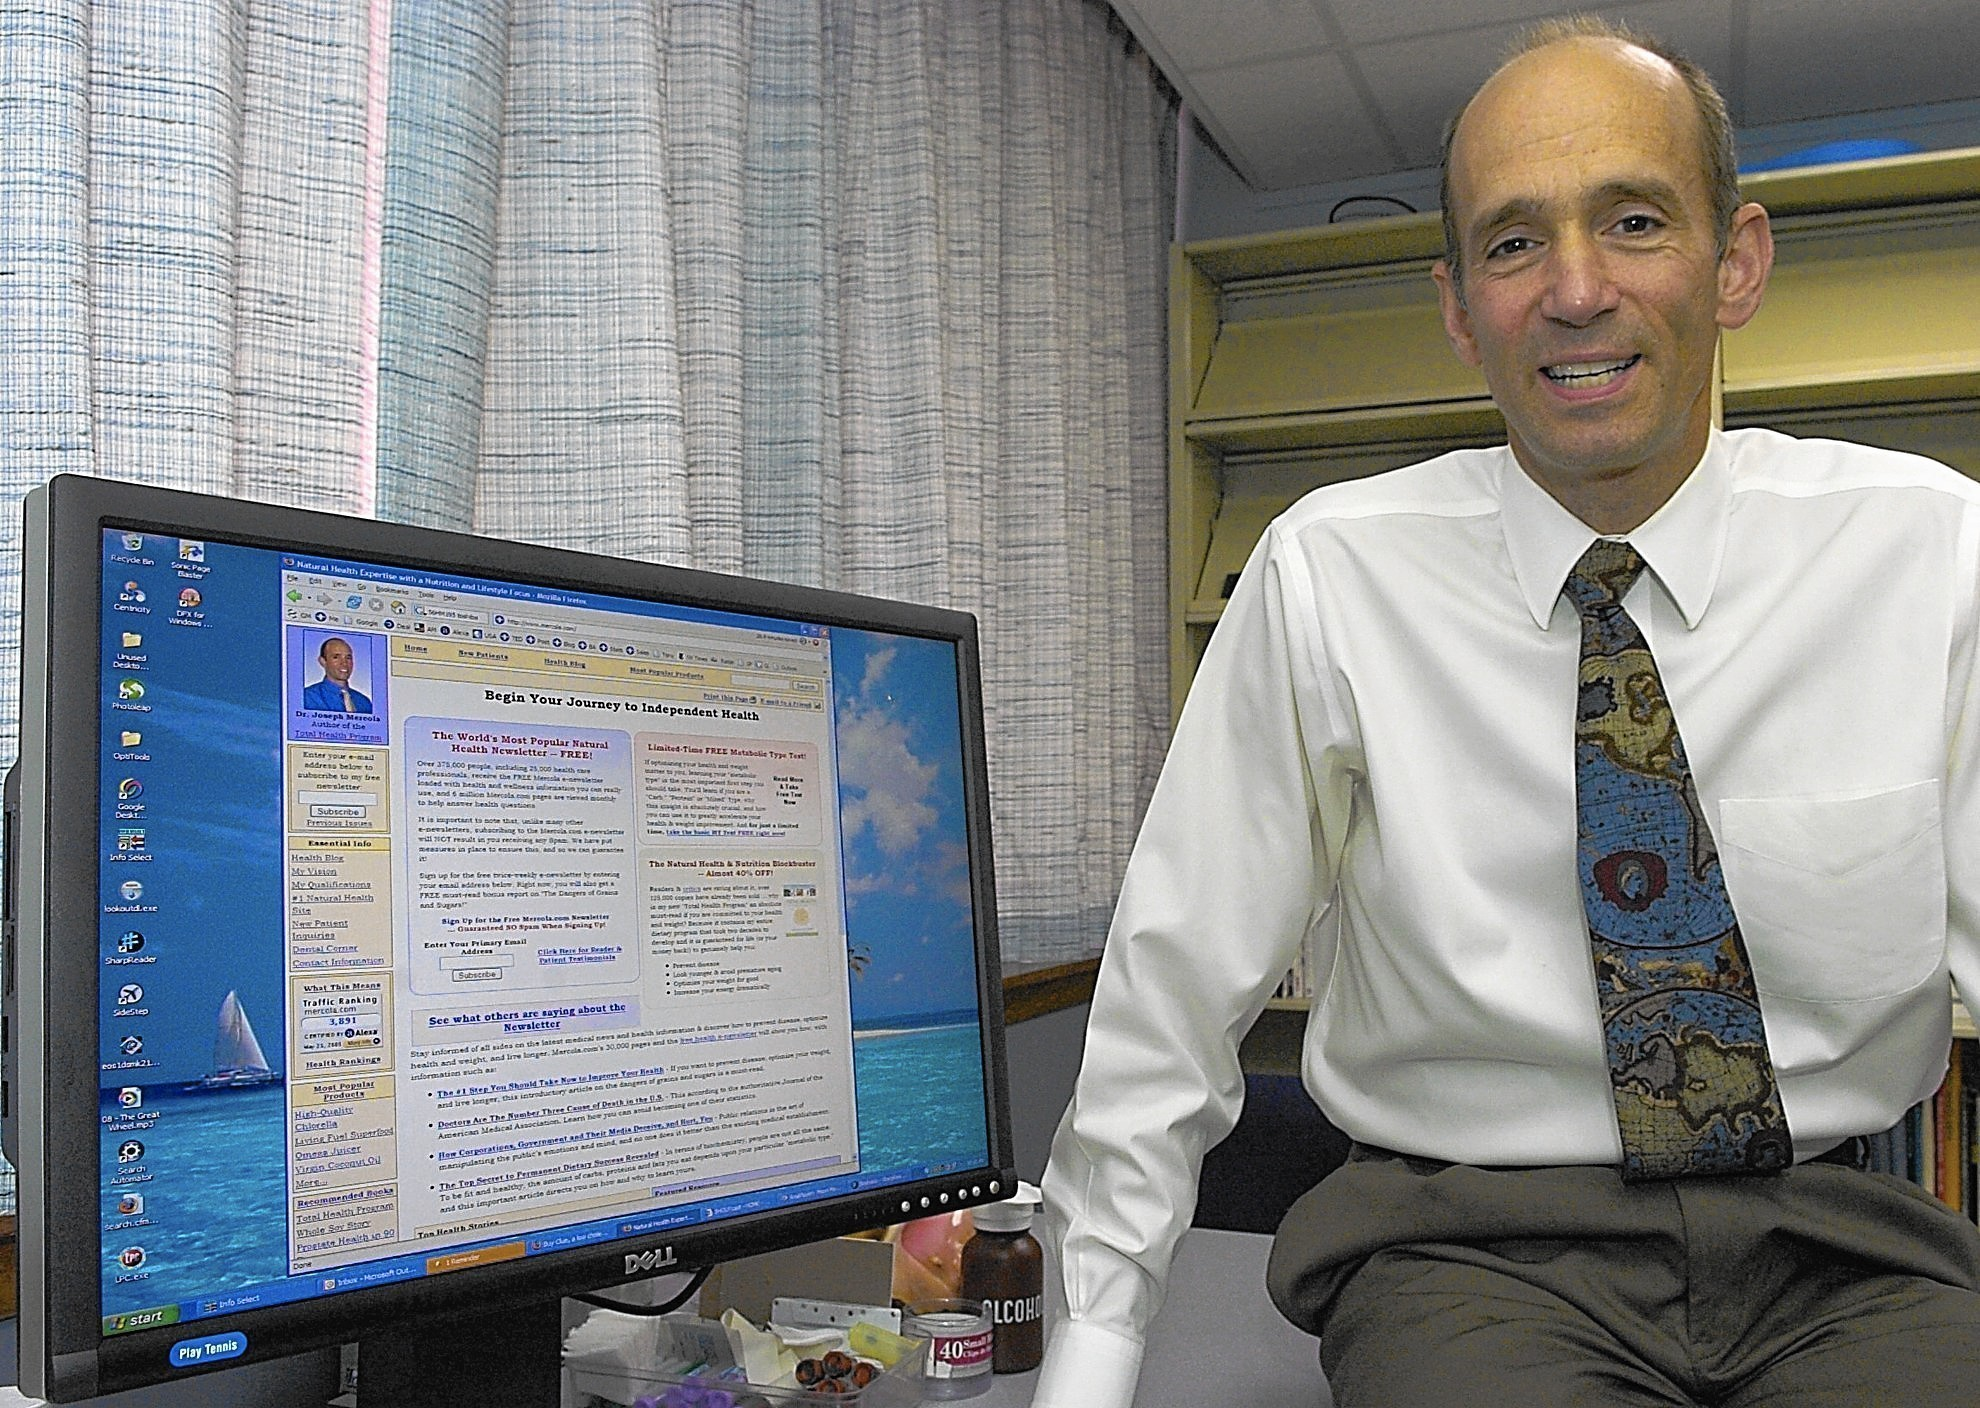 Accused by feds, sun bed-selling doctor settles for up to $5.3 million -  Chicago Tribune